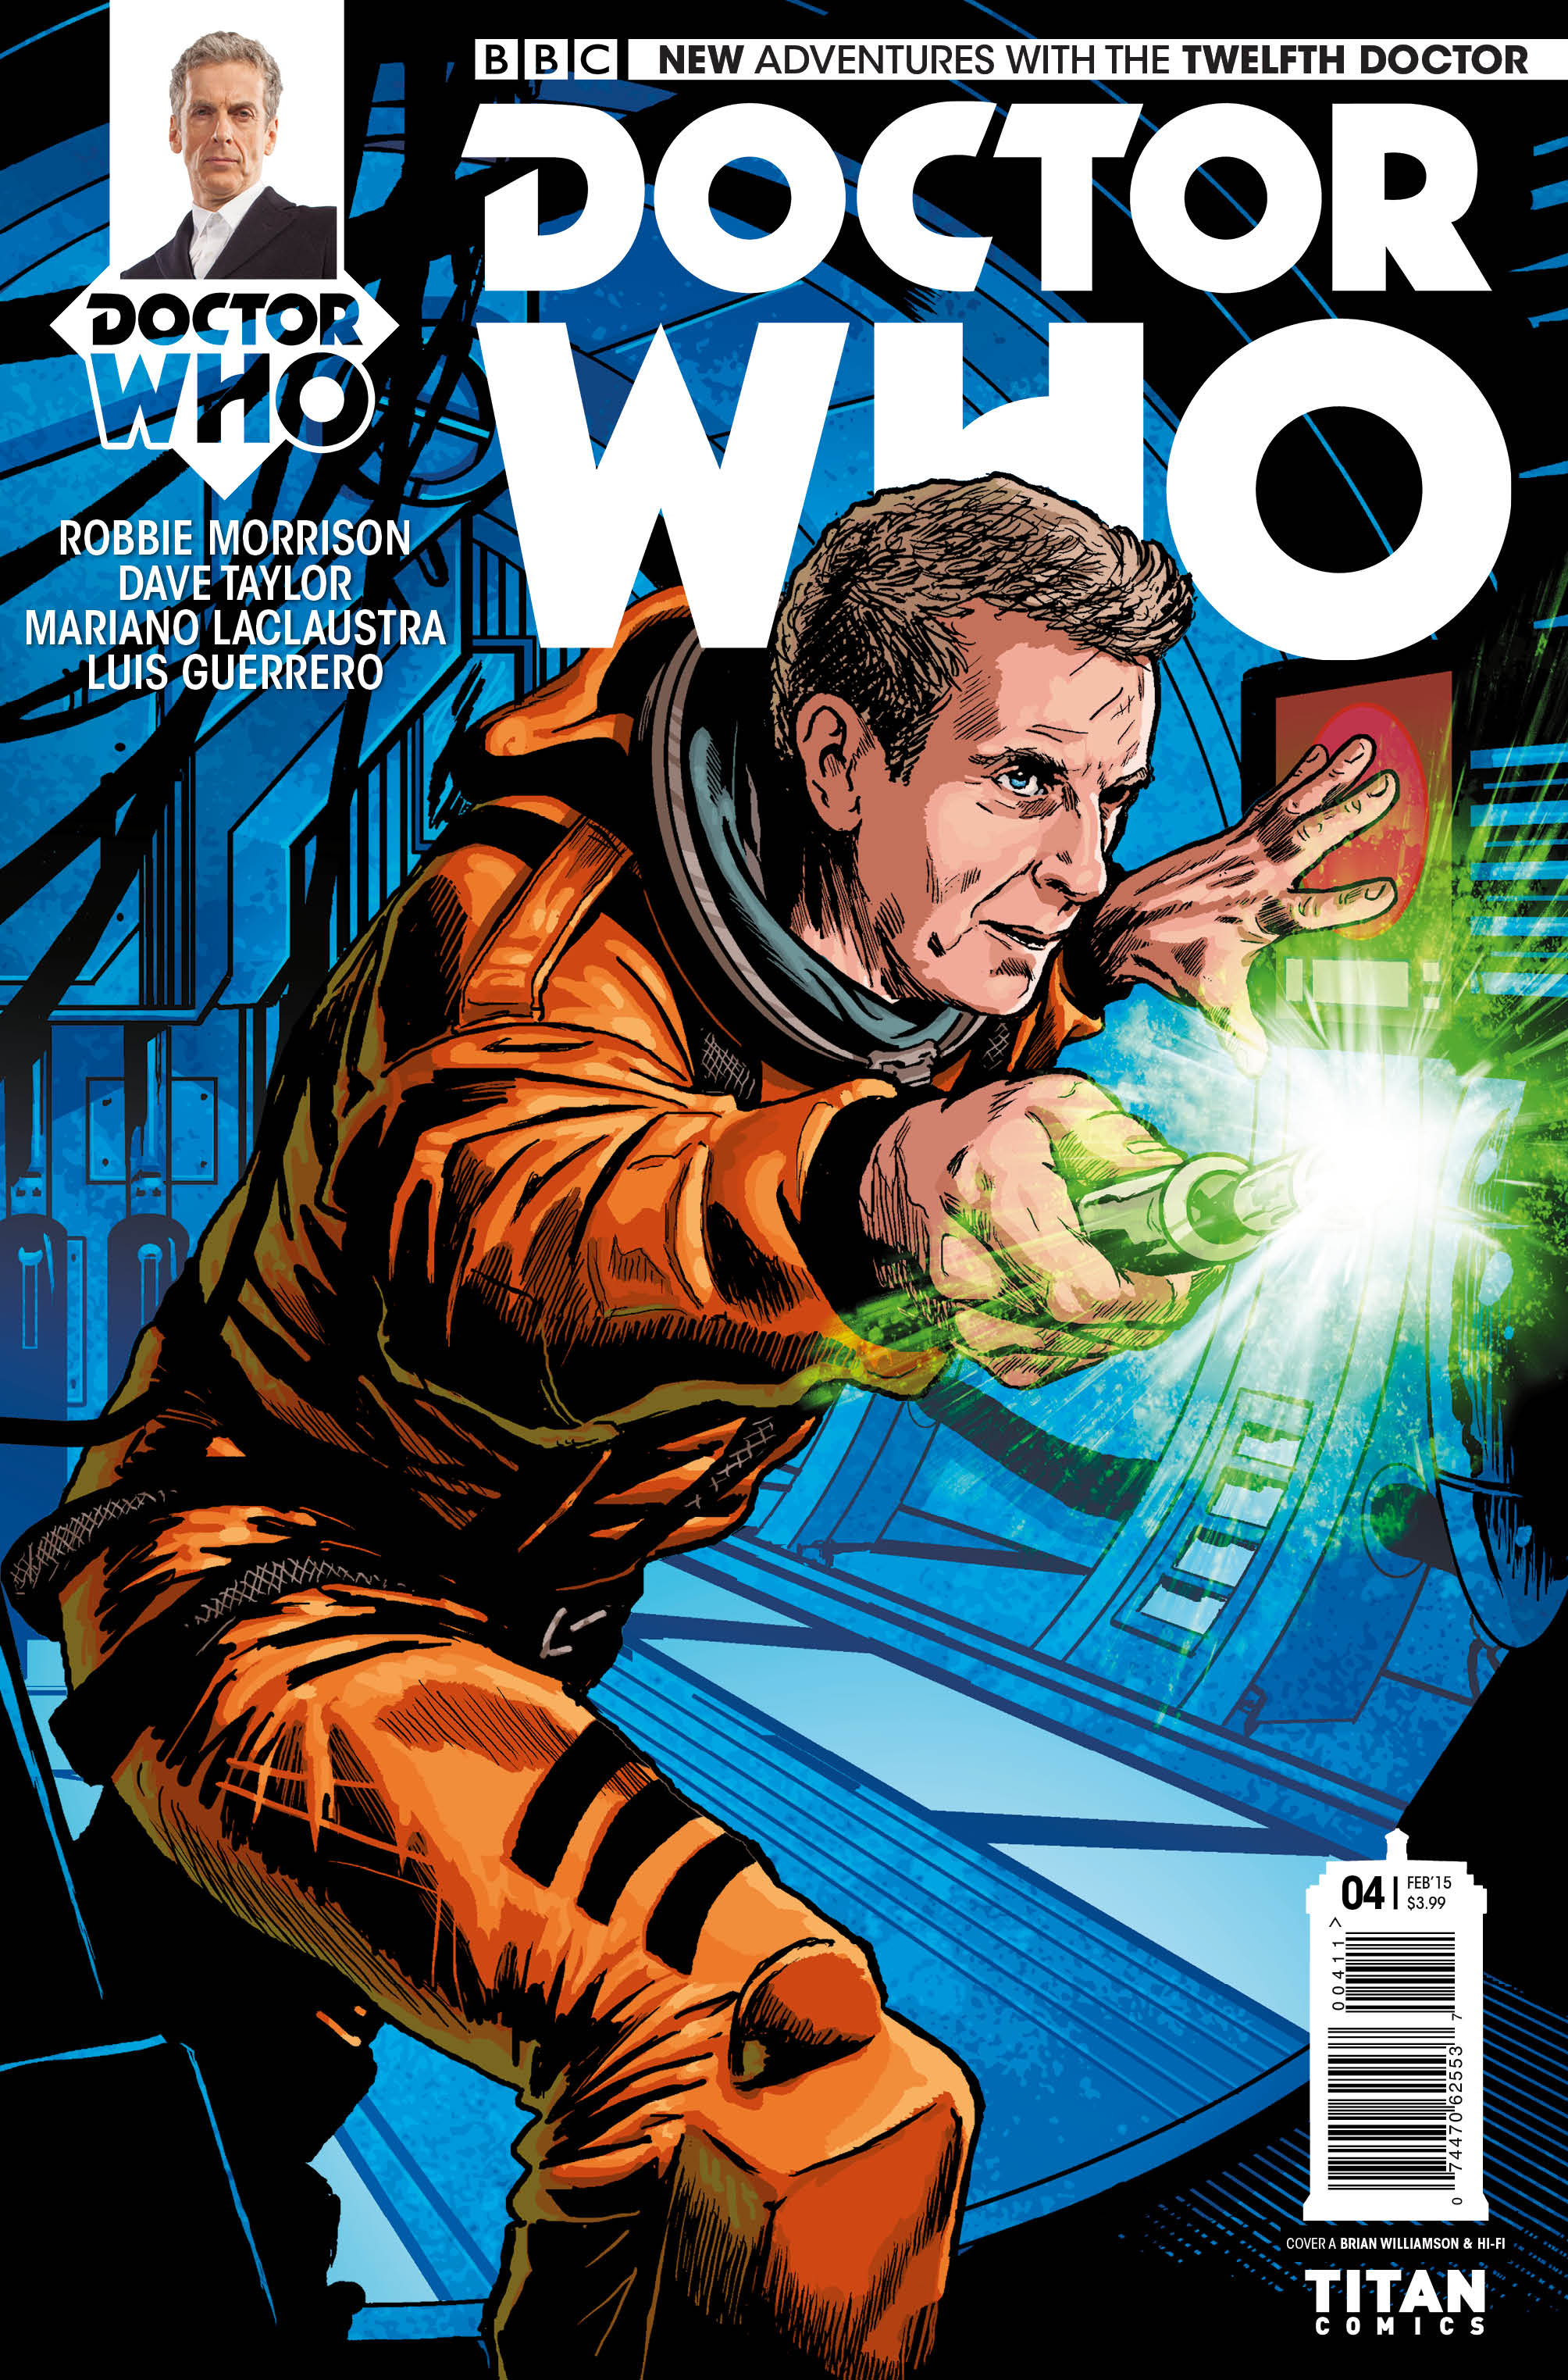 Doctor Who: The Twelfth Doctor #4 - Cover A